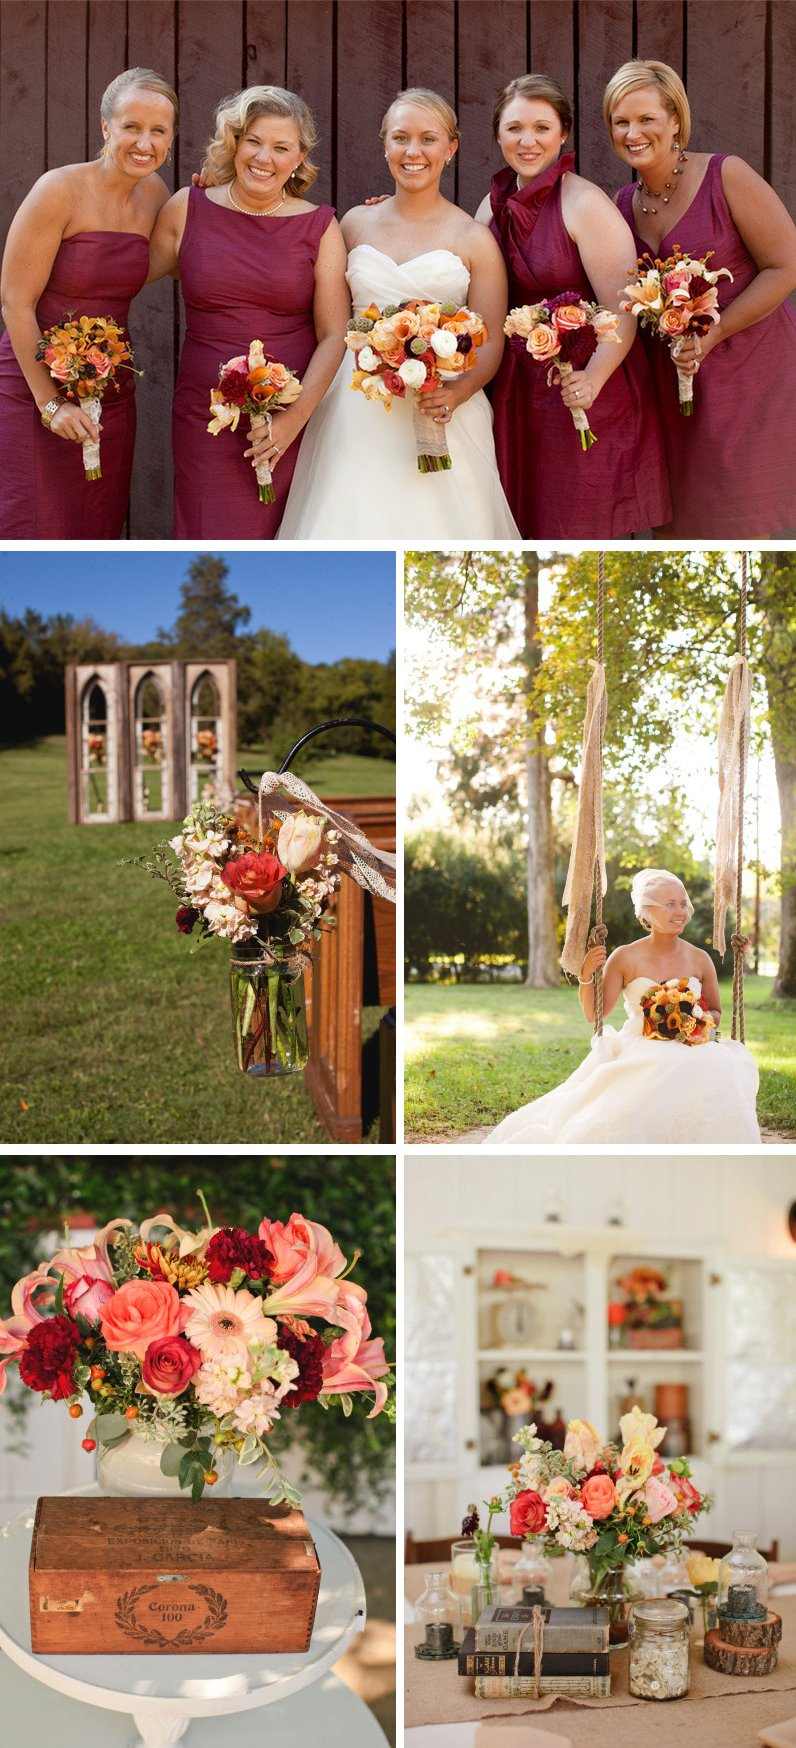 Outdoor Country Western Themed Wedding Colorful Flowers Centerpieces Maroon Bridesmaids Dres